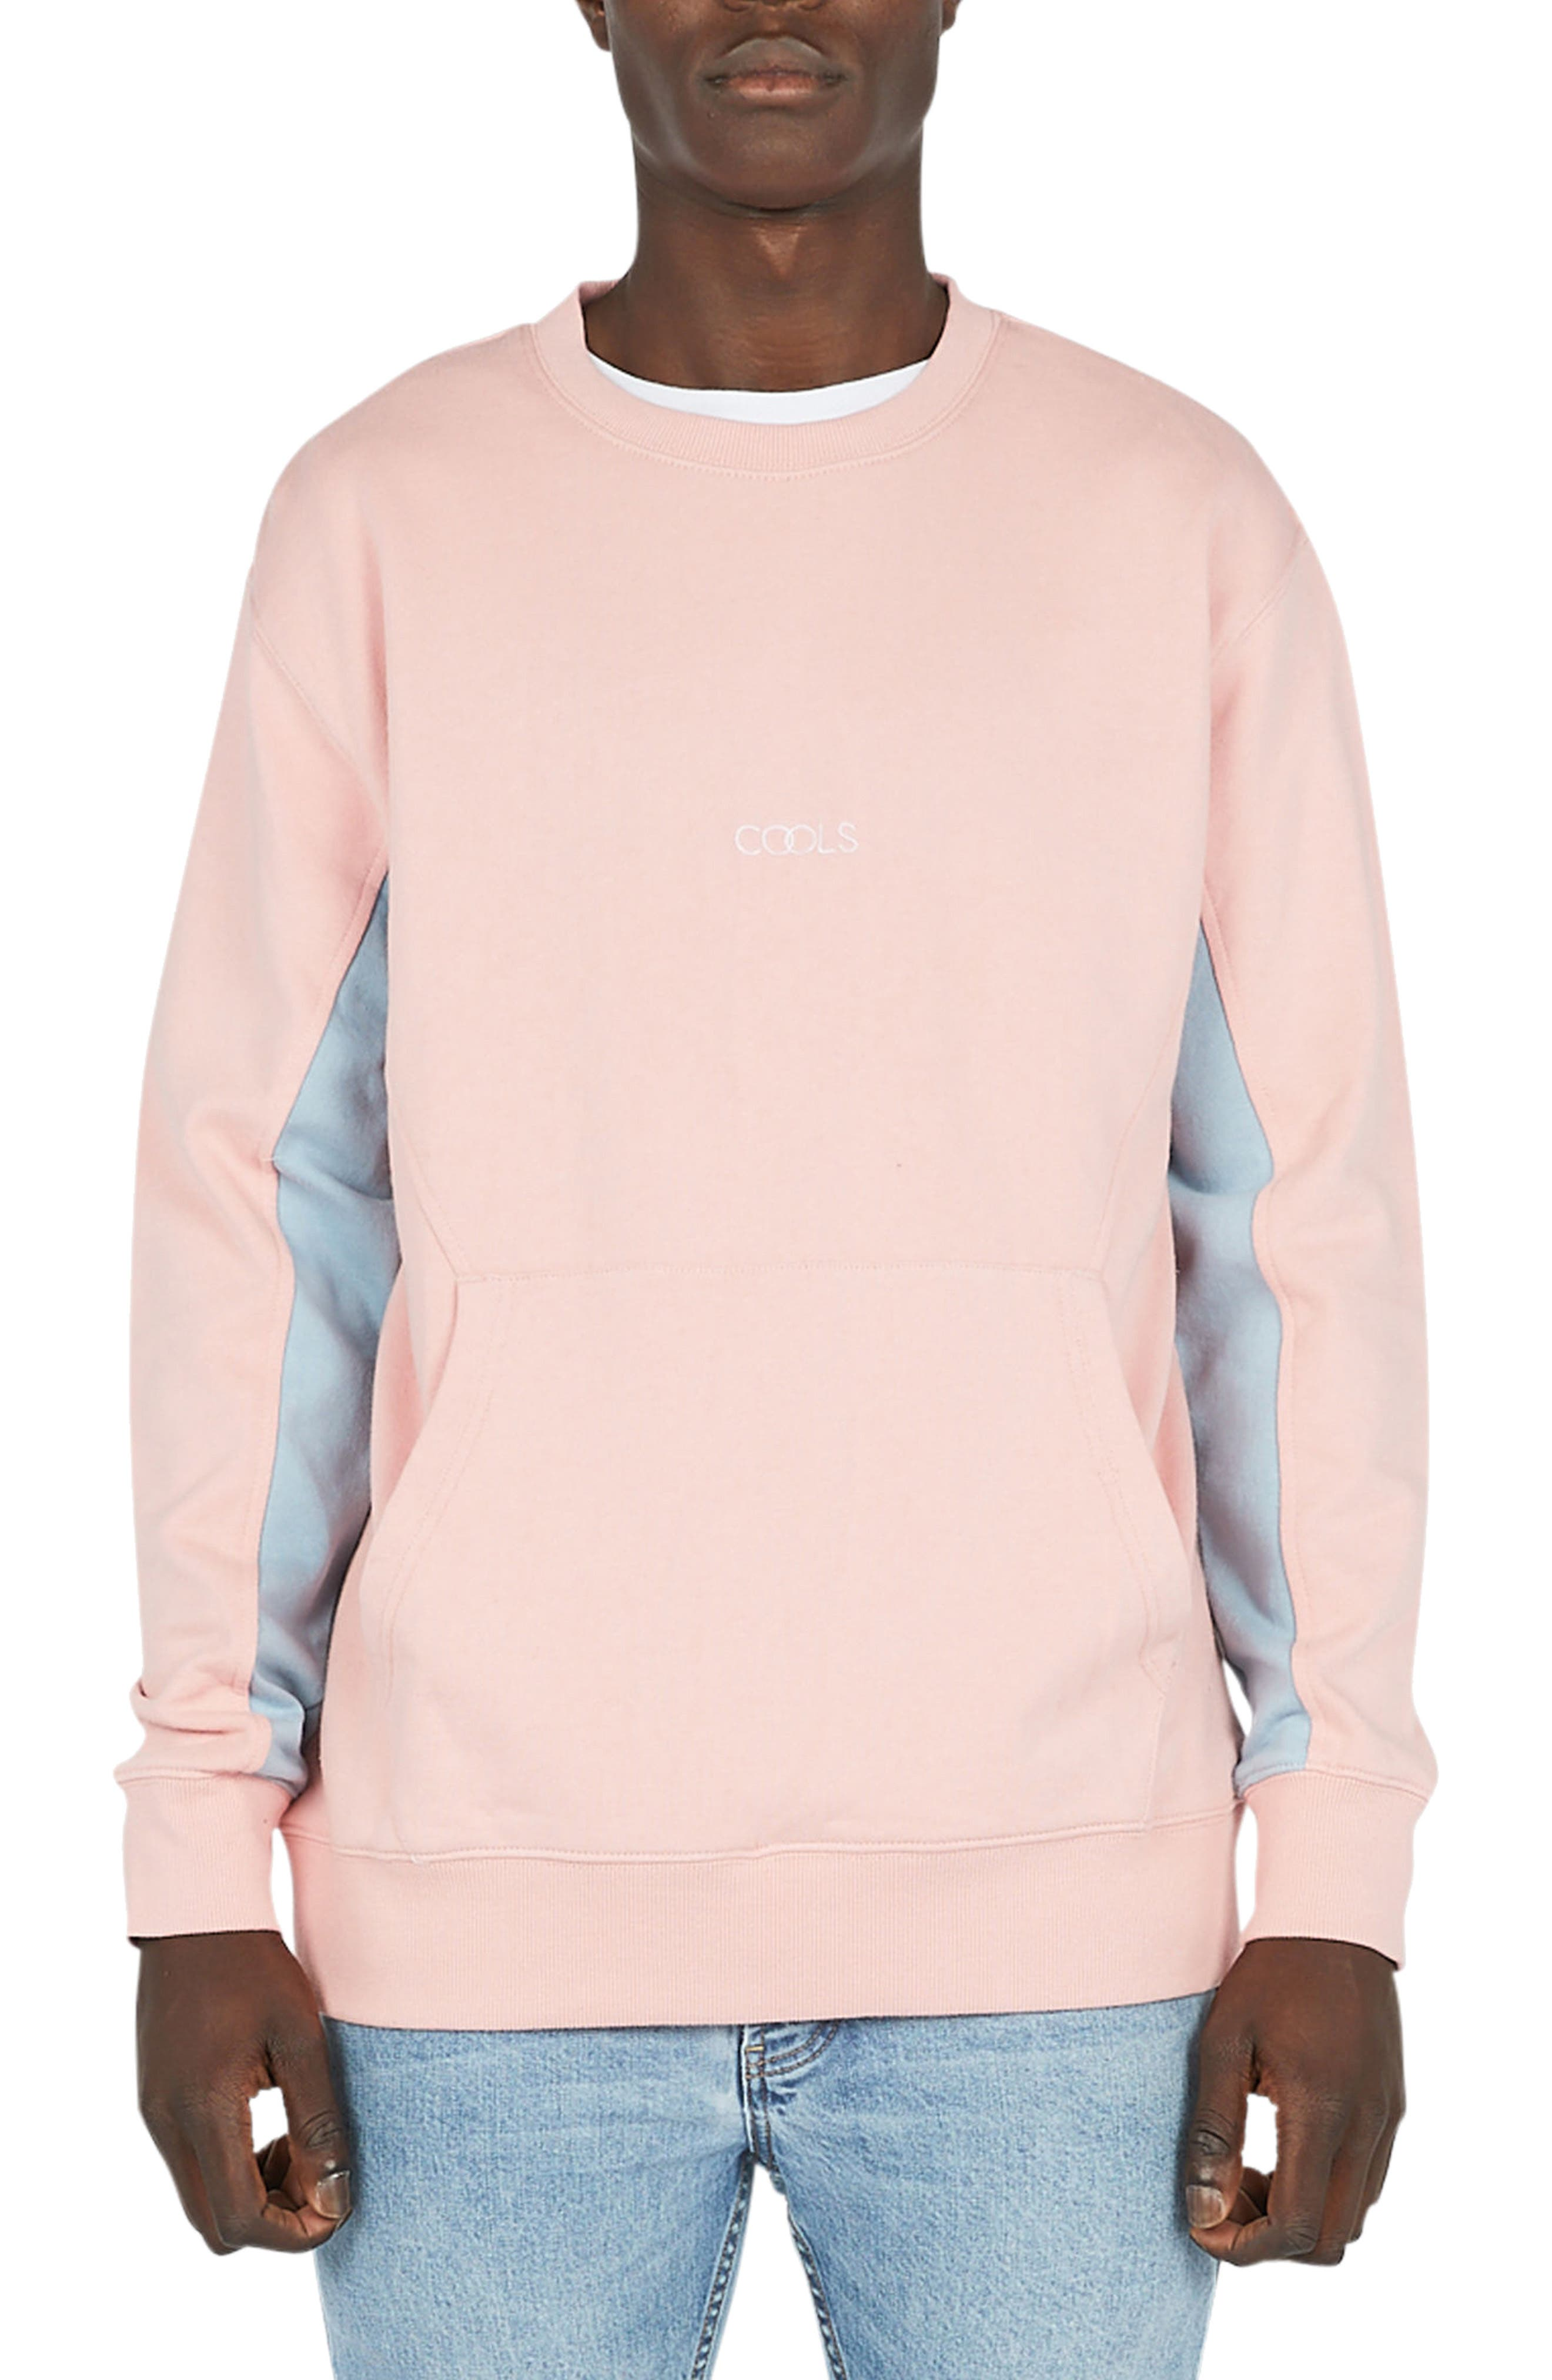 Sport Crew Sweater,                             Main thumbnail 1, color,                             Pink